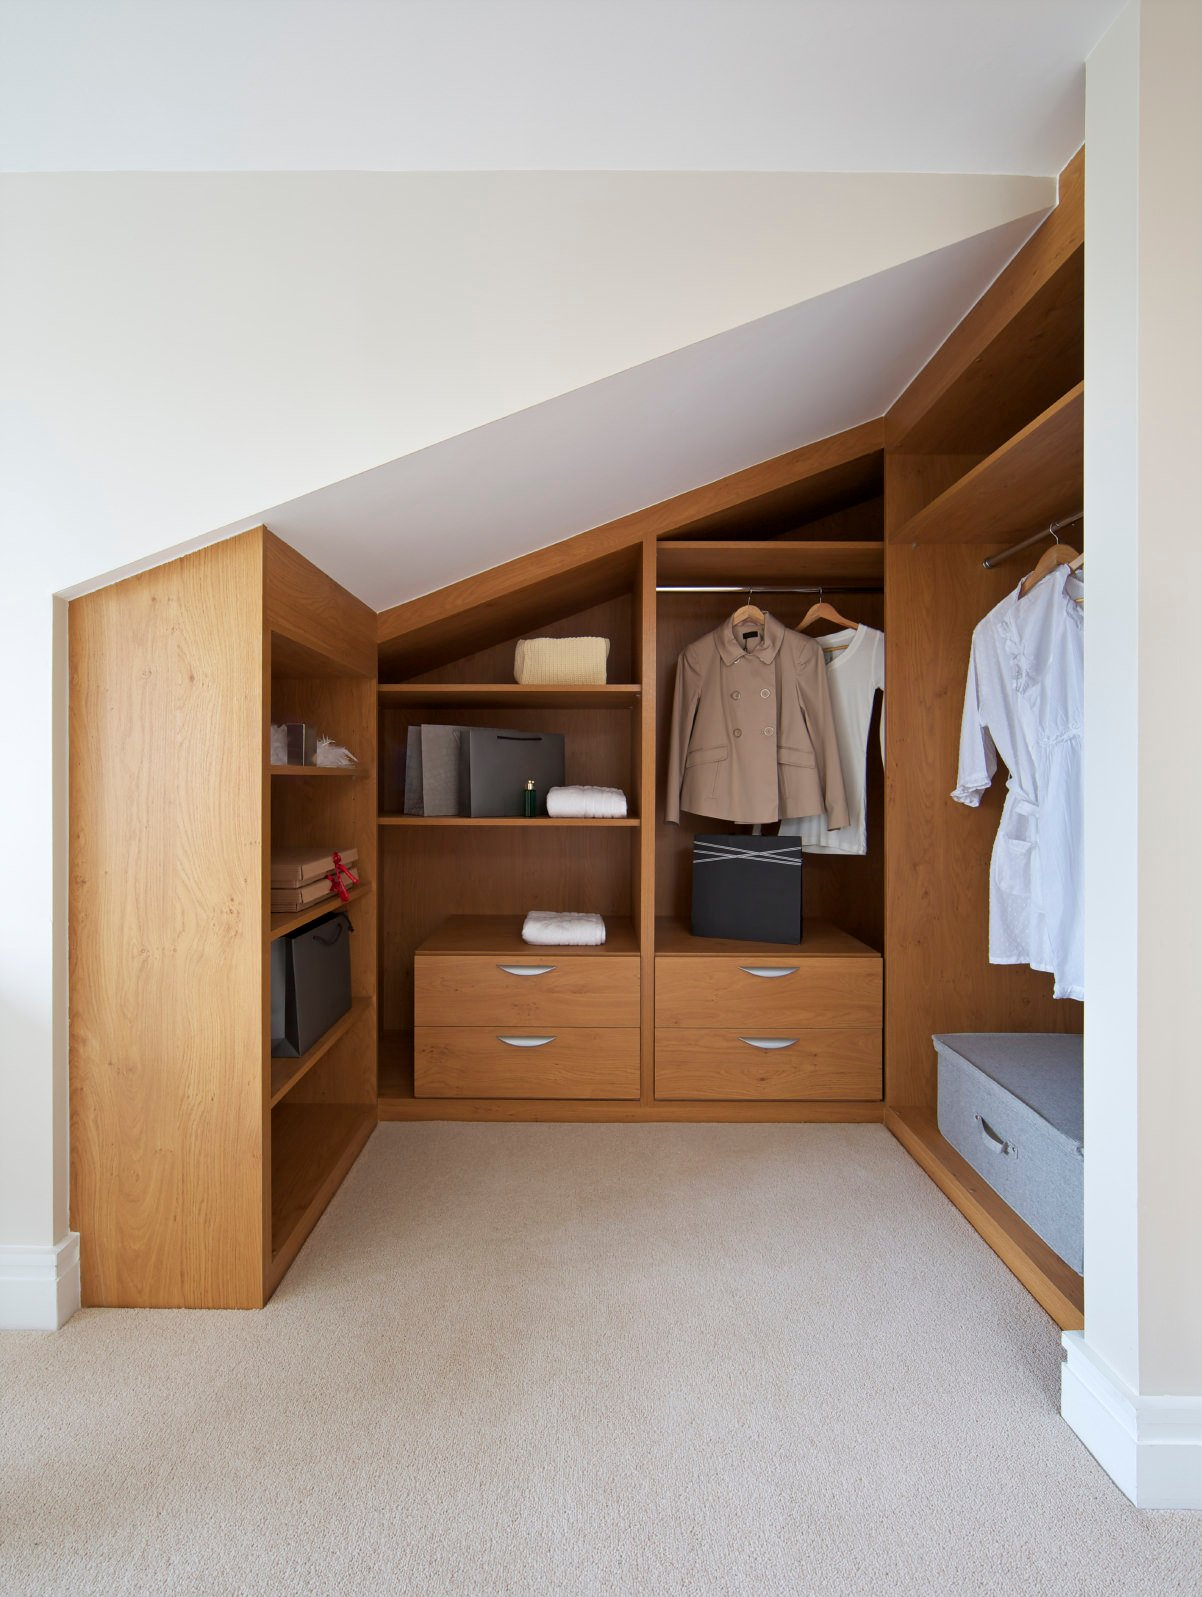 This modern women's closet features walnut finished cabinets set on a carpet flooring.